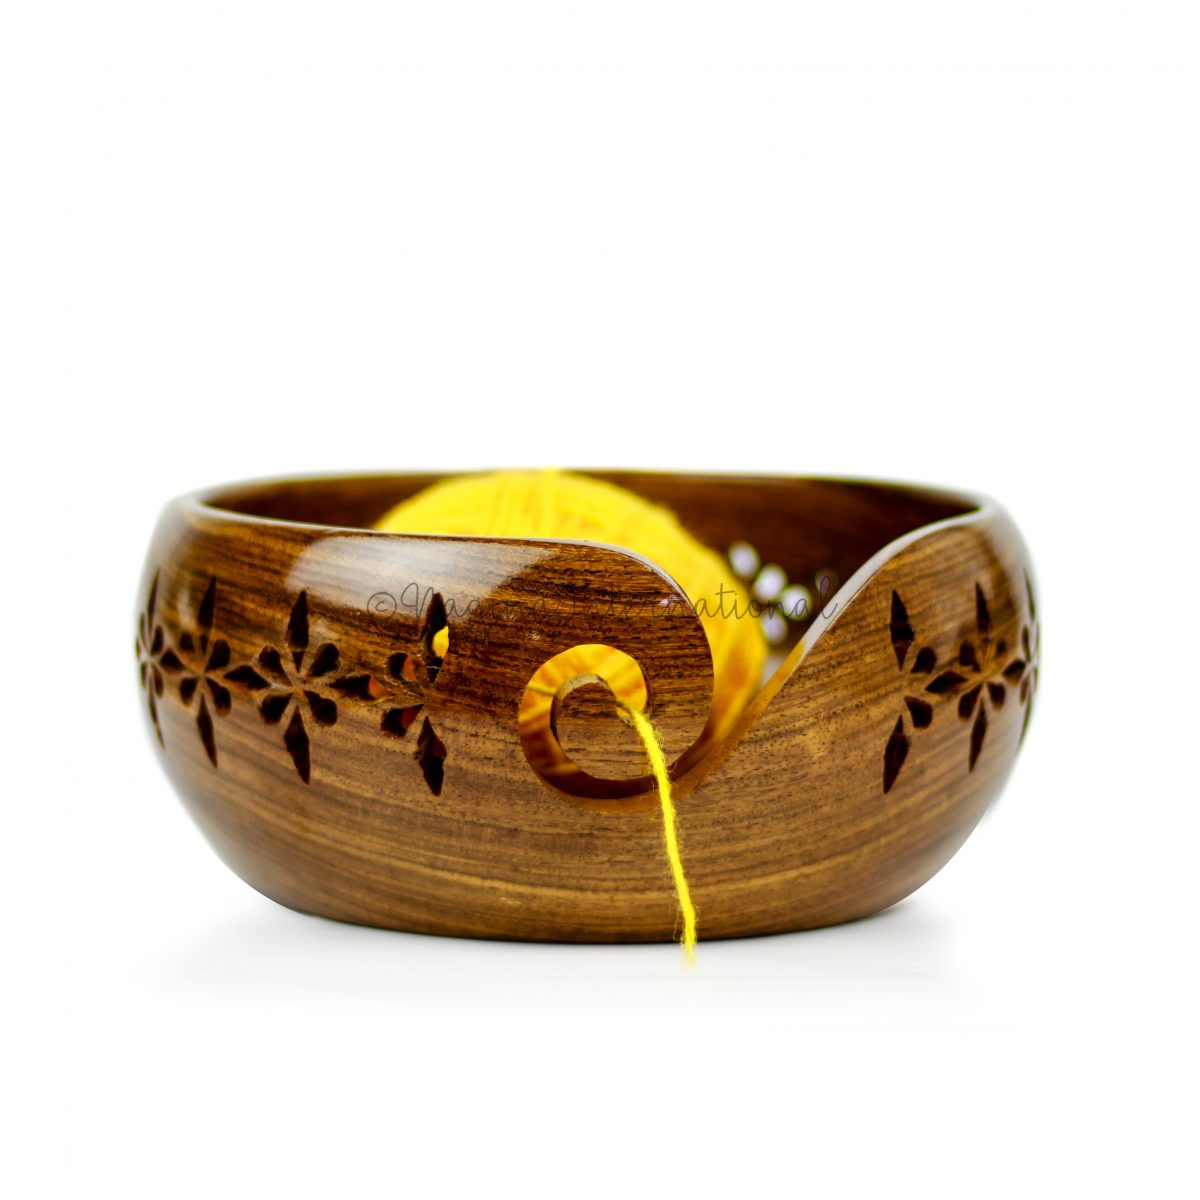 Rosewood Crafted Wooden Yarn Storage Bowl with Carved Holes /& Drills Knitting